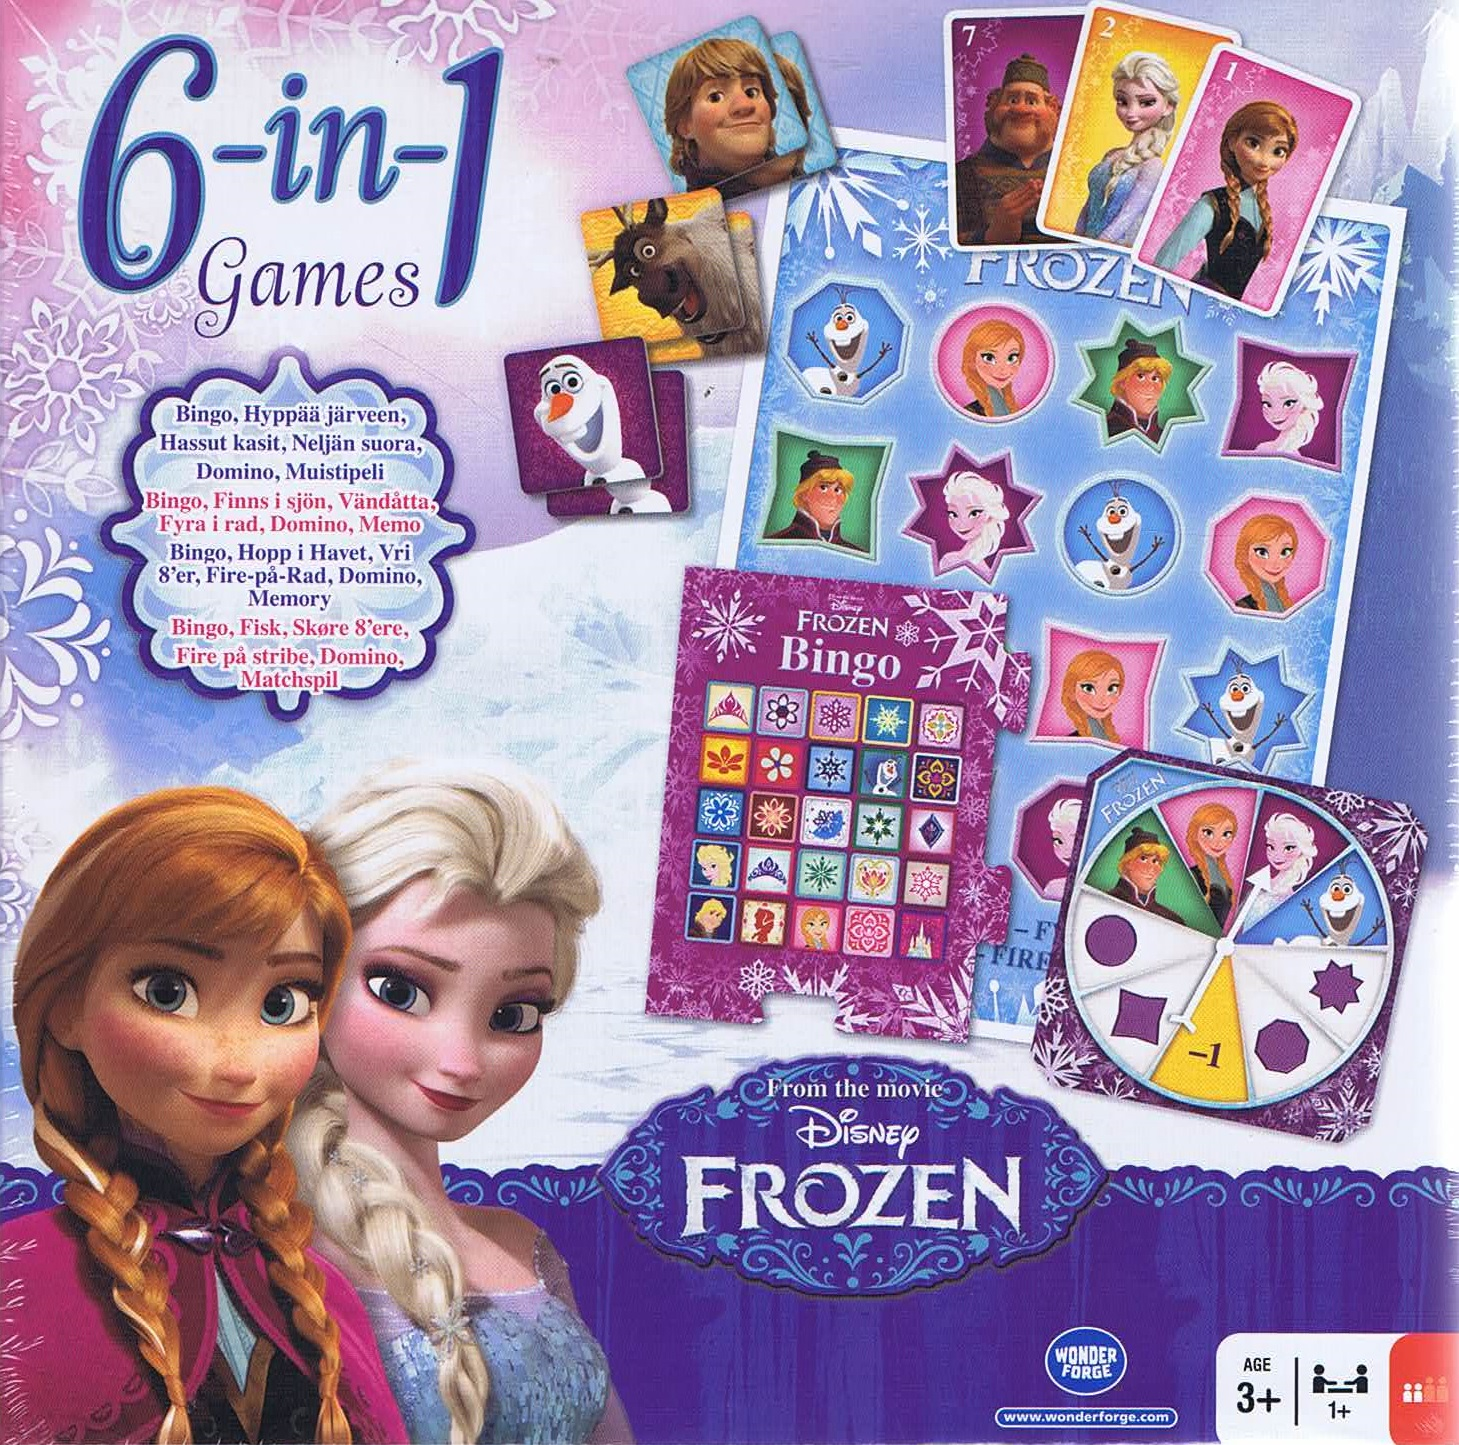 Image of 6-in1 games, Frozen